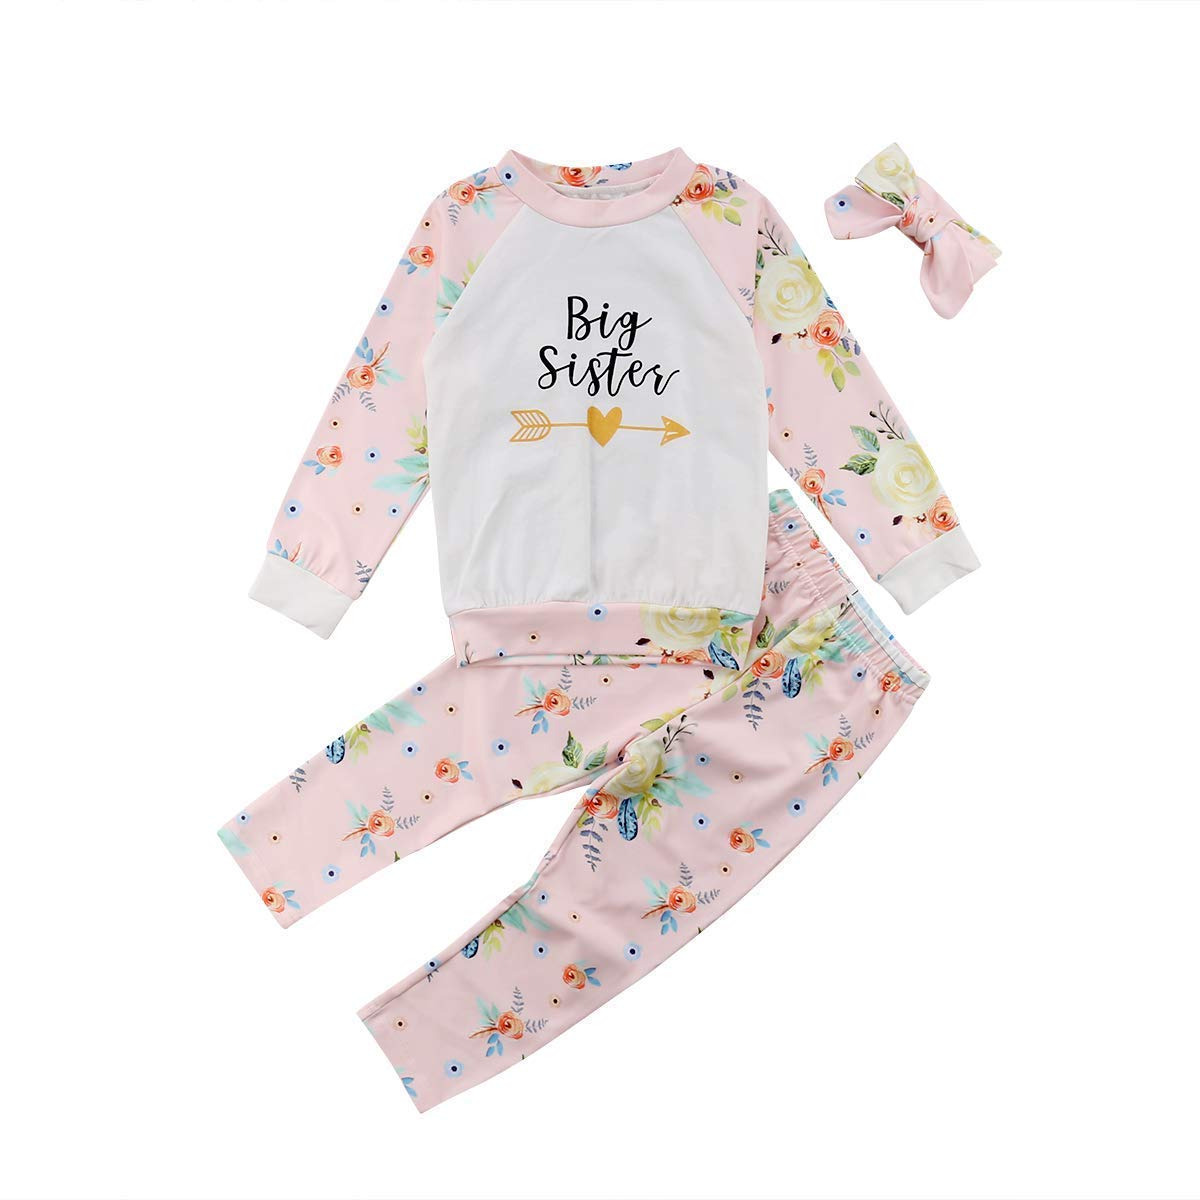 i-Auto Time Baby Girl Clothes Big Little Sister Romper T-Shirt Floral Pant Outfit Set